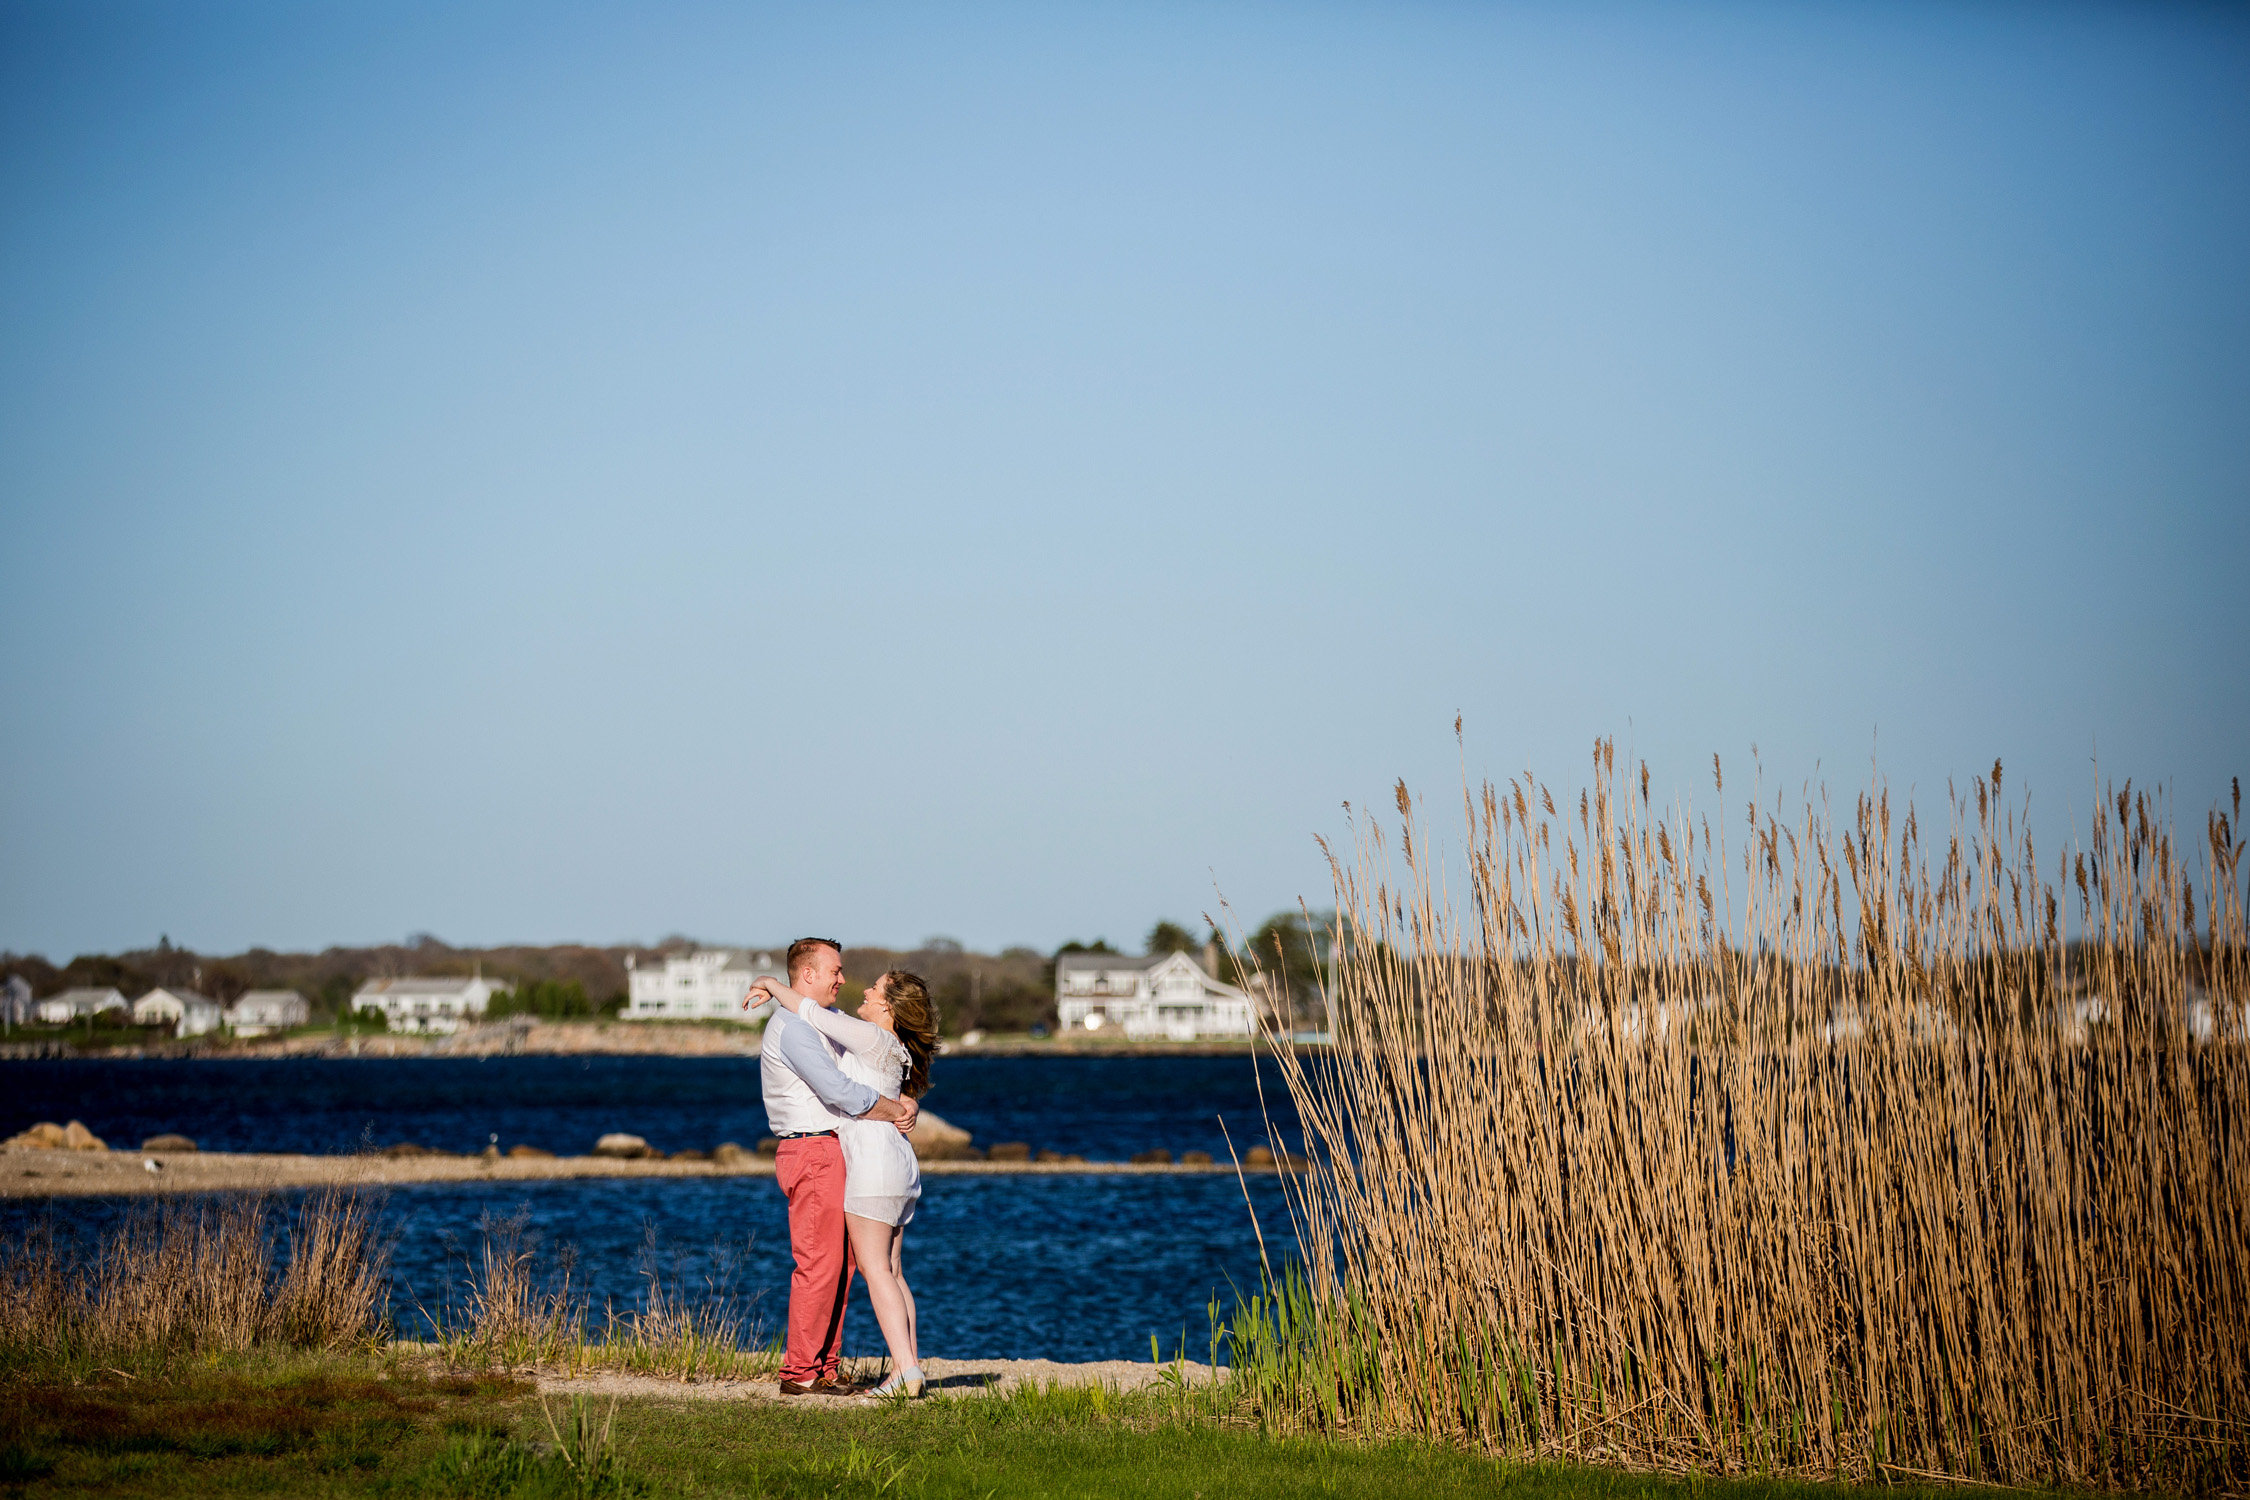 Tracey Buyce Engagement Photography41.jpg